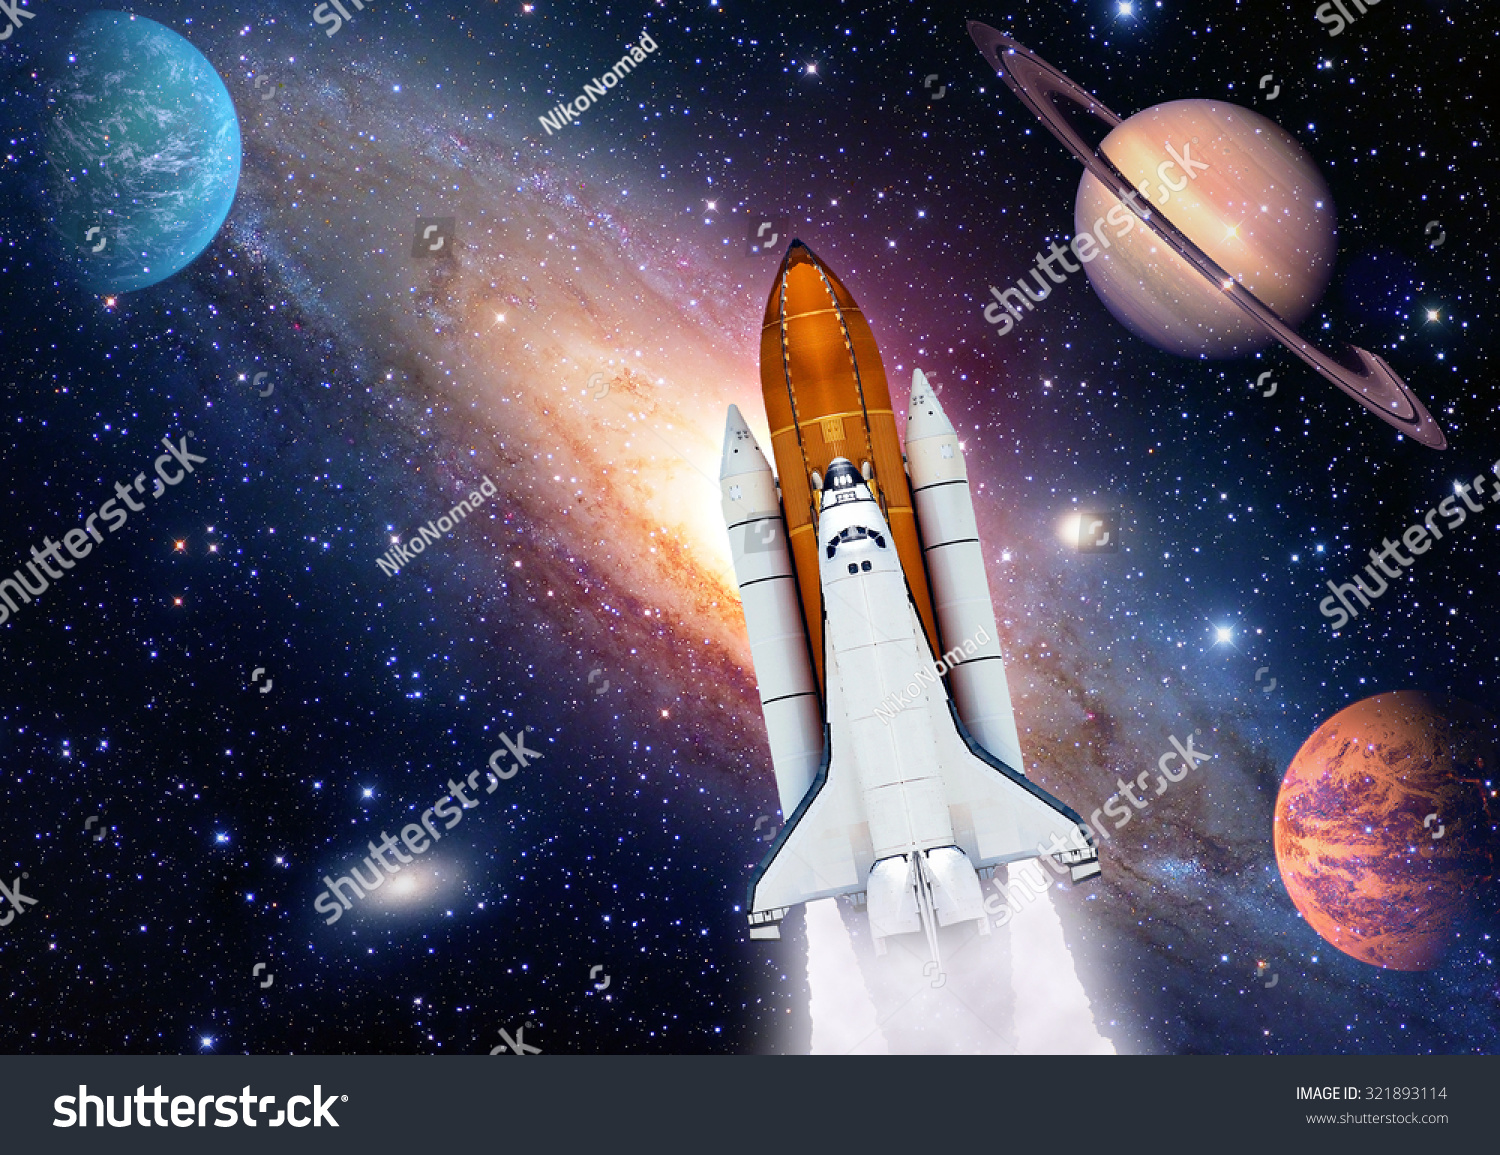 Outer space travel shuttle rocket launch stock photo for Outer space travel